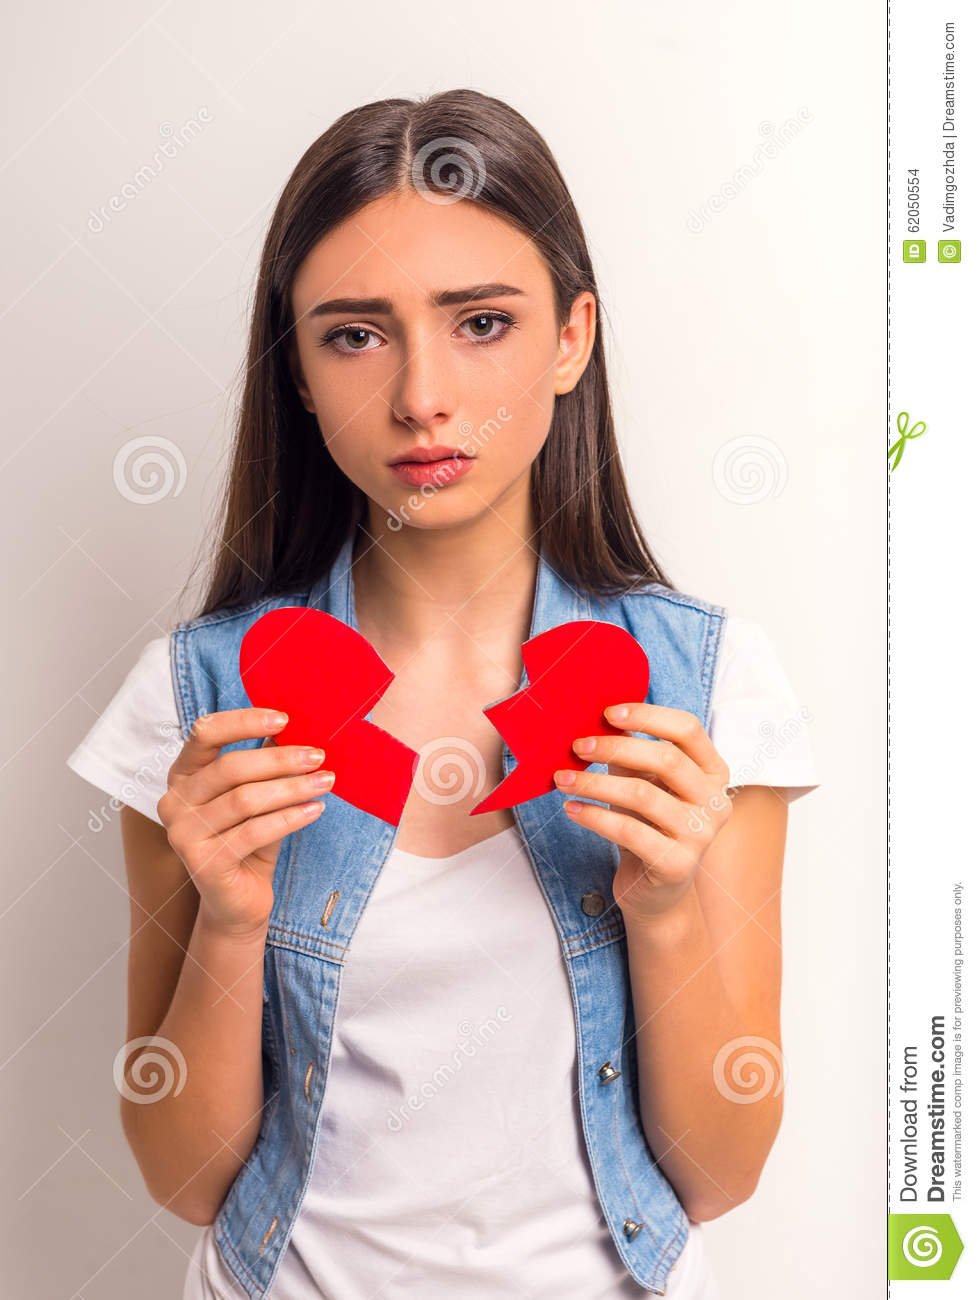 teenager and love essay Similarities between romeo and juliet and teenagers today essay noticing   a girl he loved, did not want to have sex with him and, thus, she did not love him.